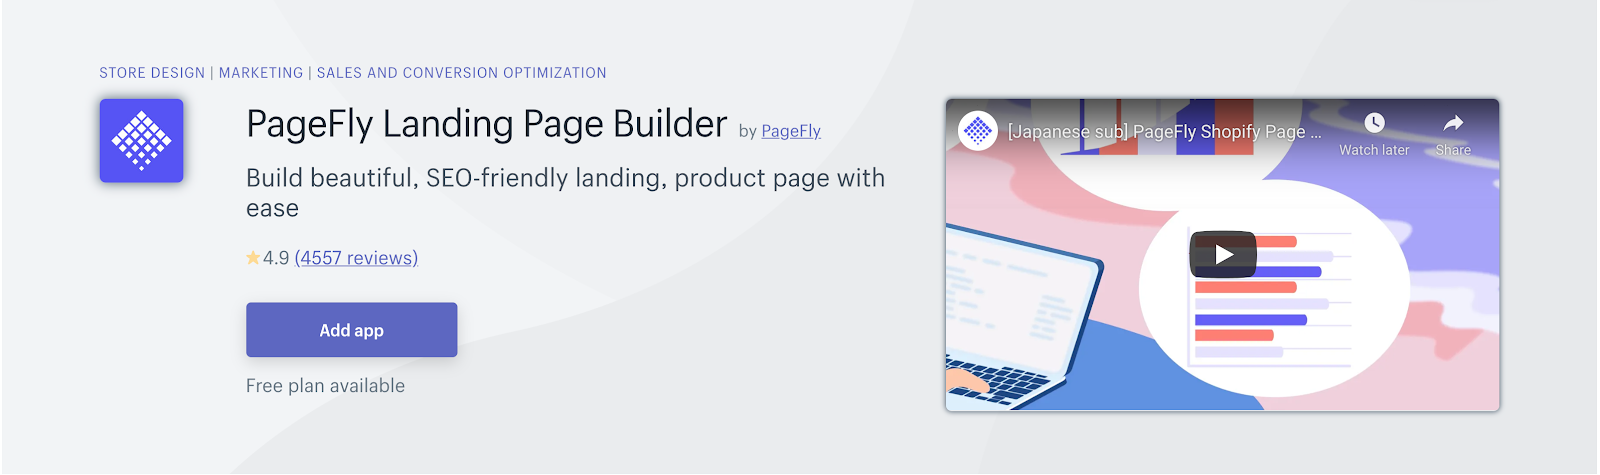 Page Fly Landing Page Builder